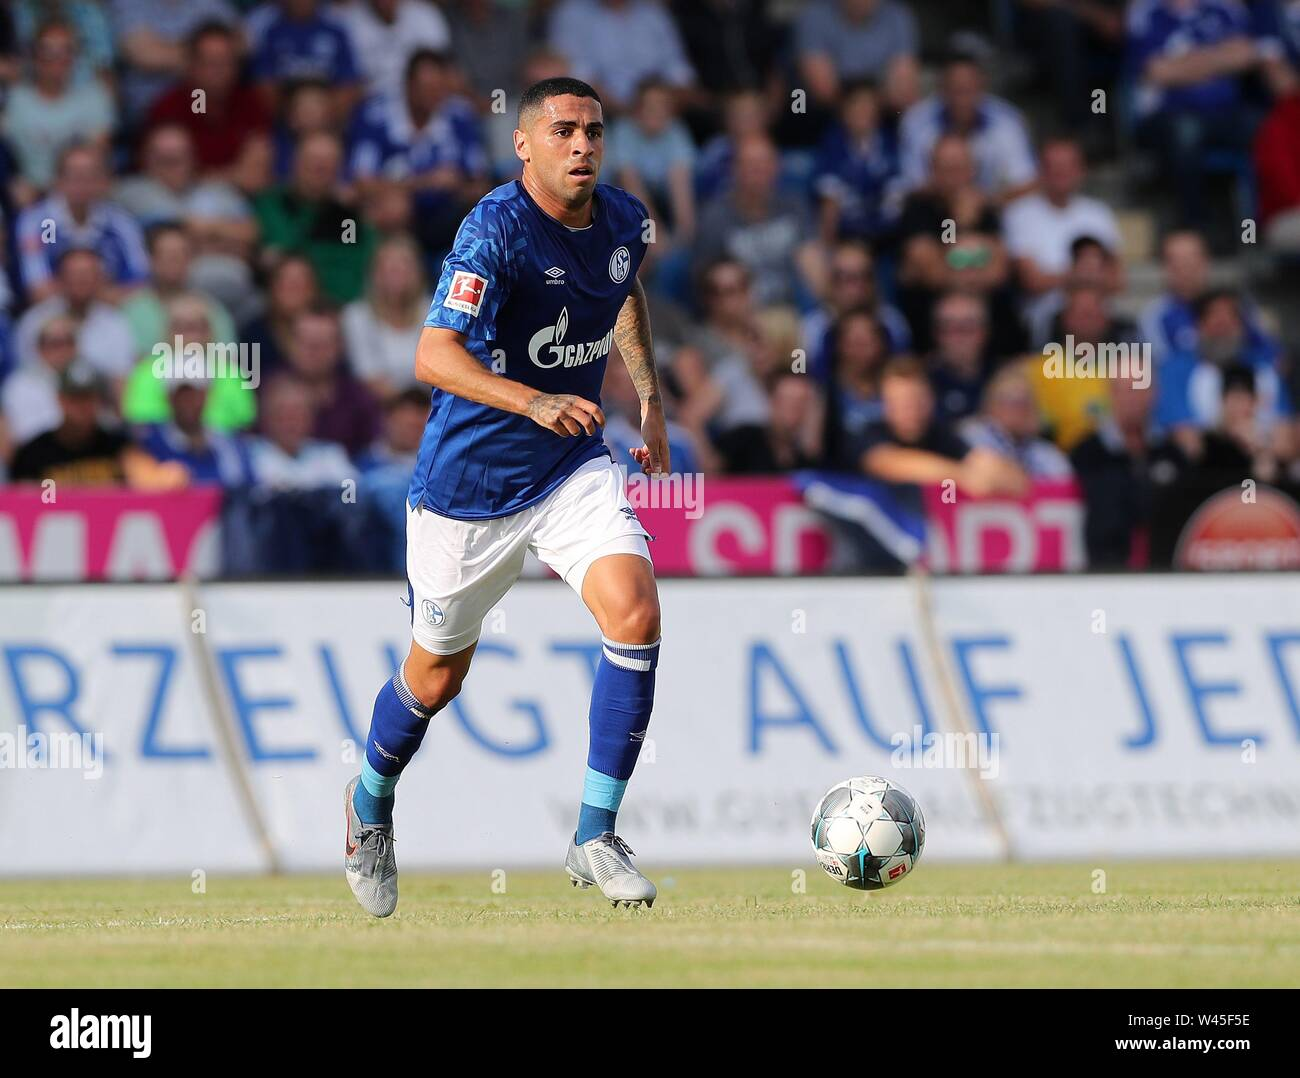 Lotte, Deutschland. 19th July, 2019. firo: 19.07.2019, football, 1.Bundesliga, season 2019/2020, friendly match, FC Schalke 04 - Norwich City Omar MASCARELL, Schalke, single action | usage worldwide Credit: dpa/Alamy Live News - Stock Image